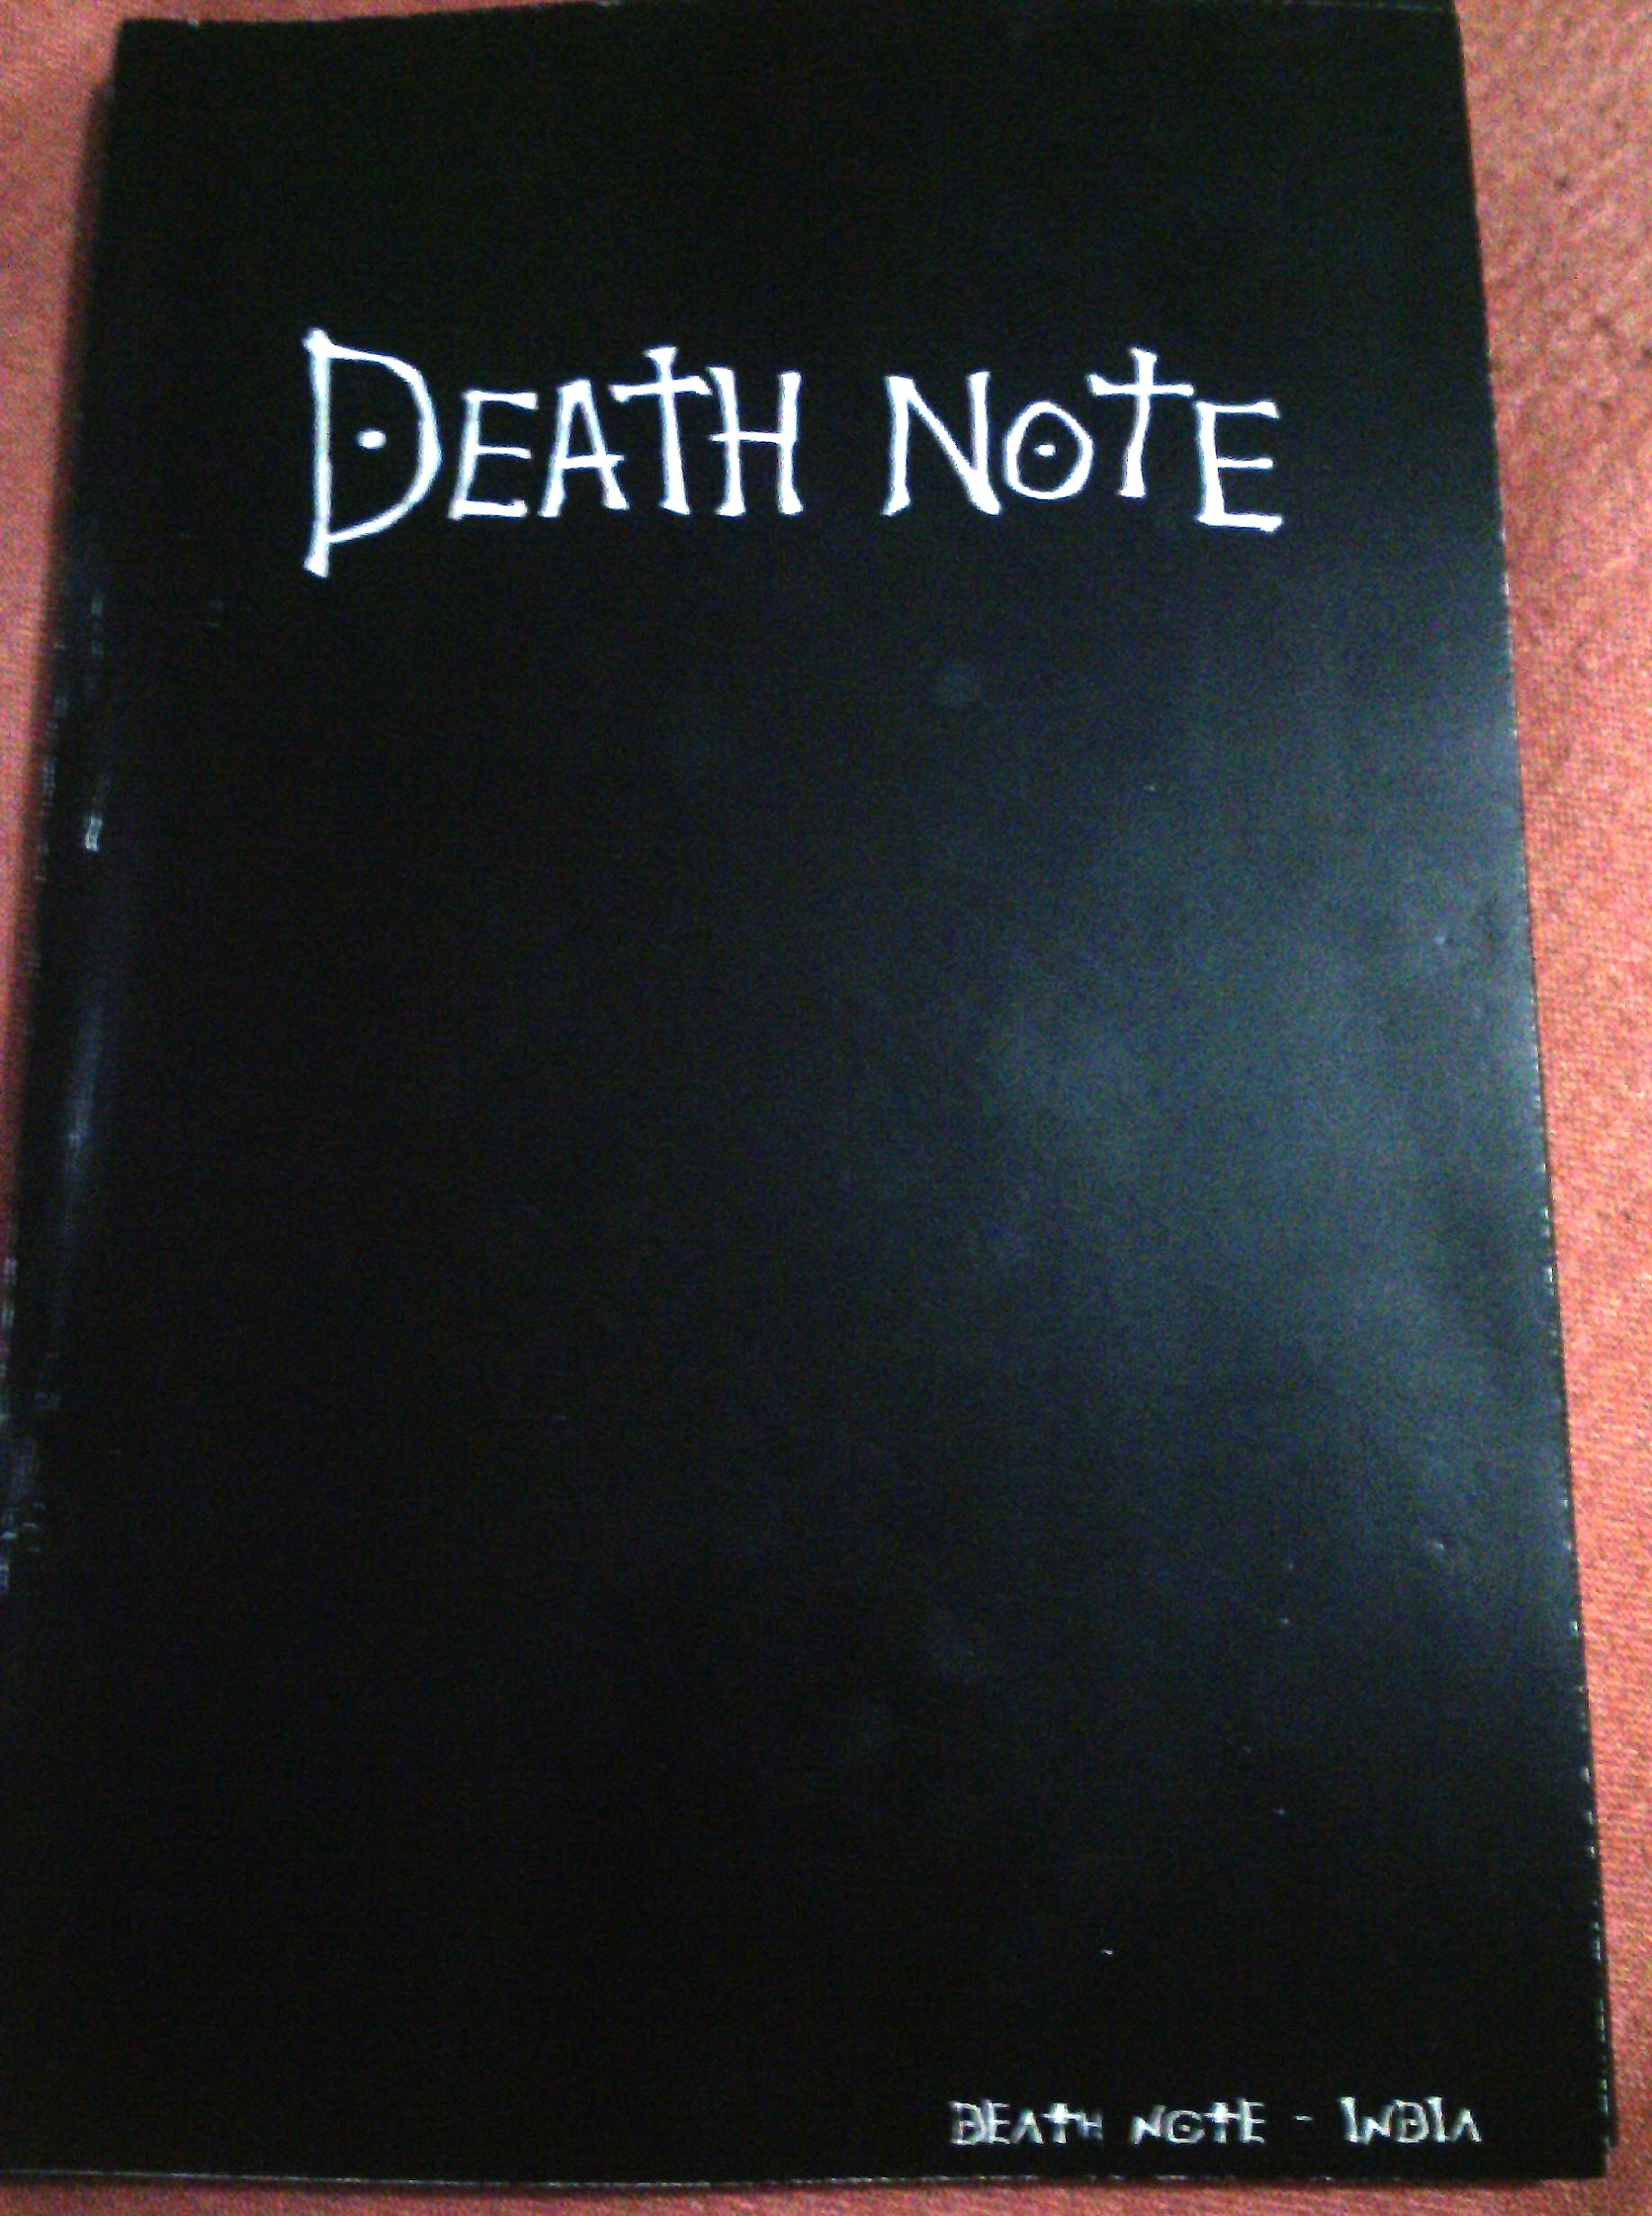 DEATH NOTE - INDIA